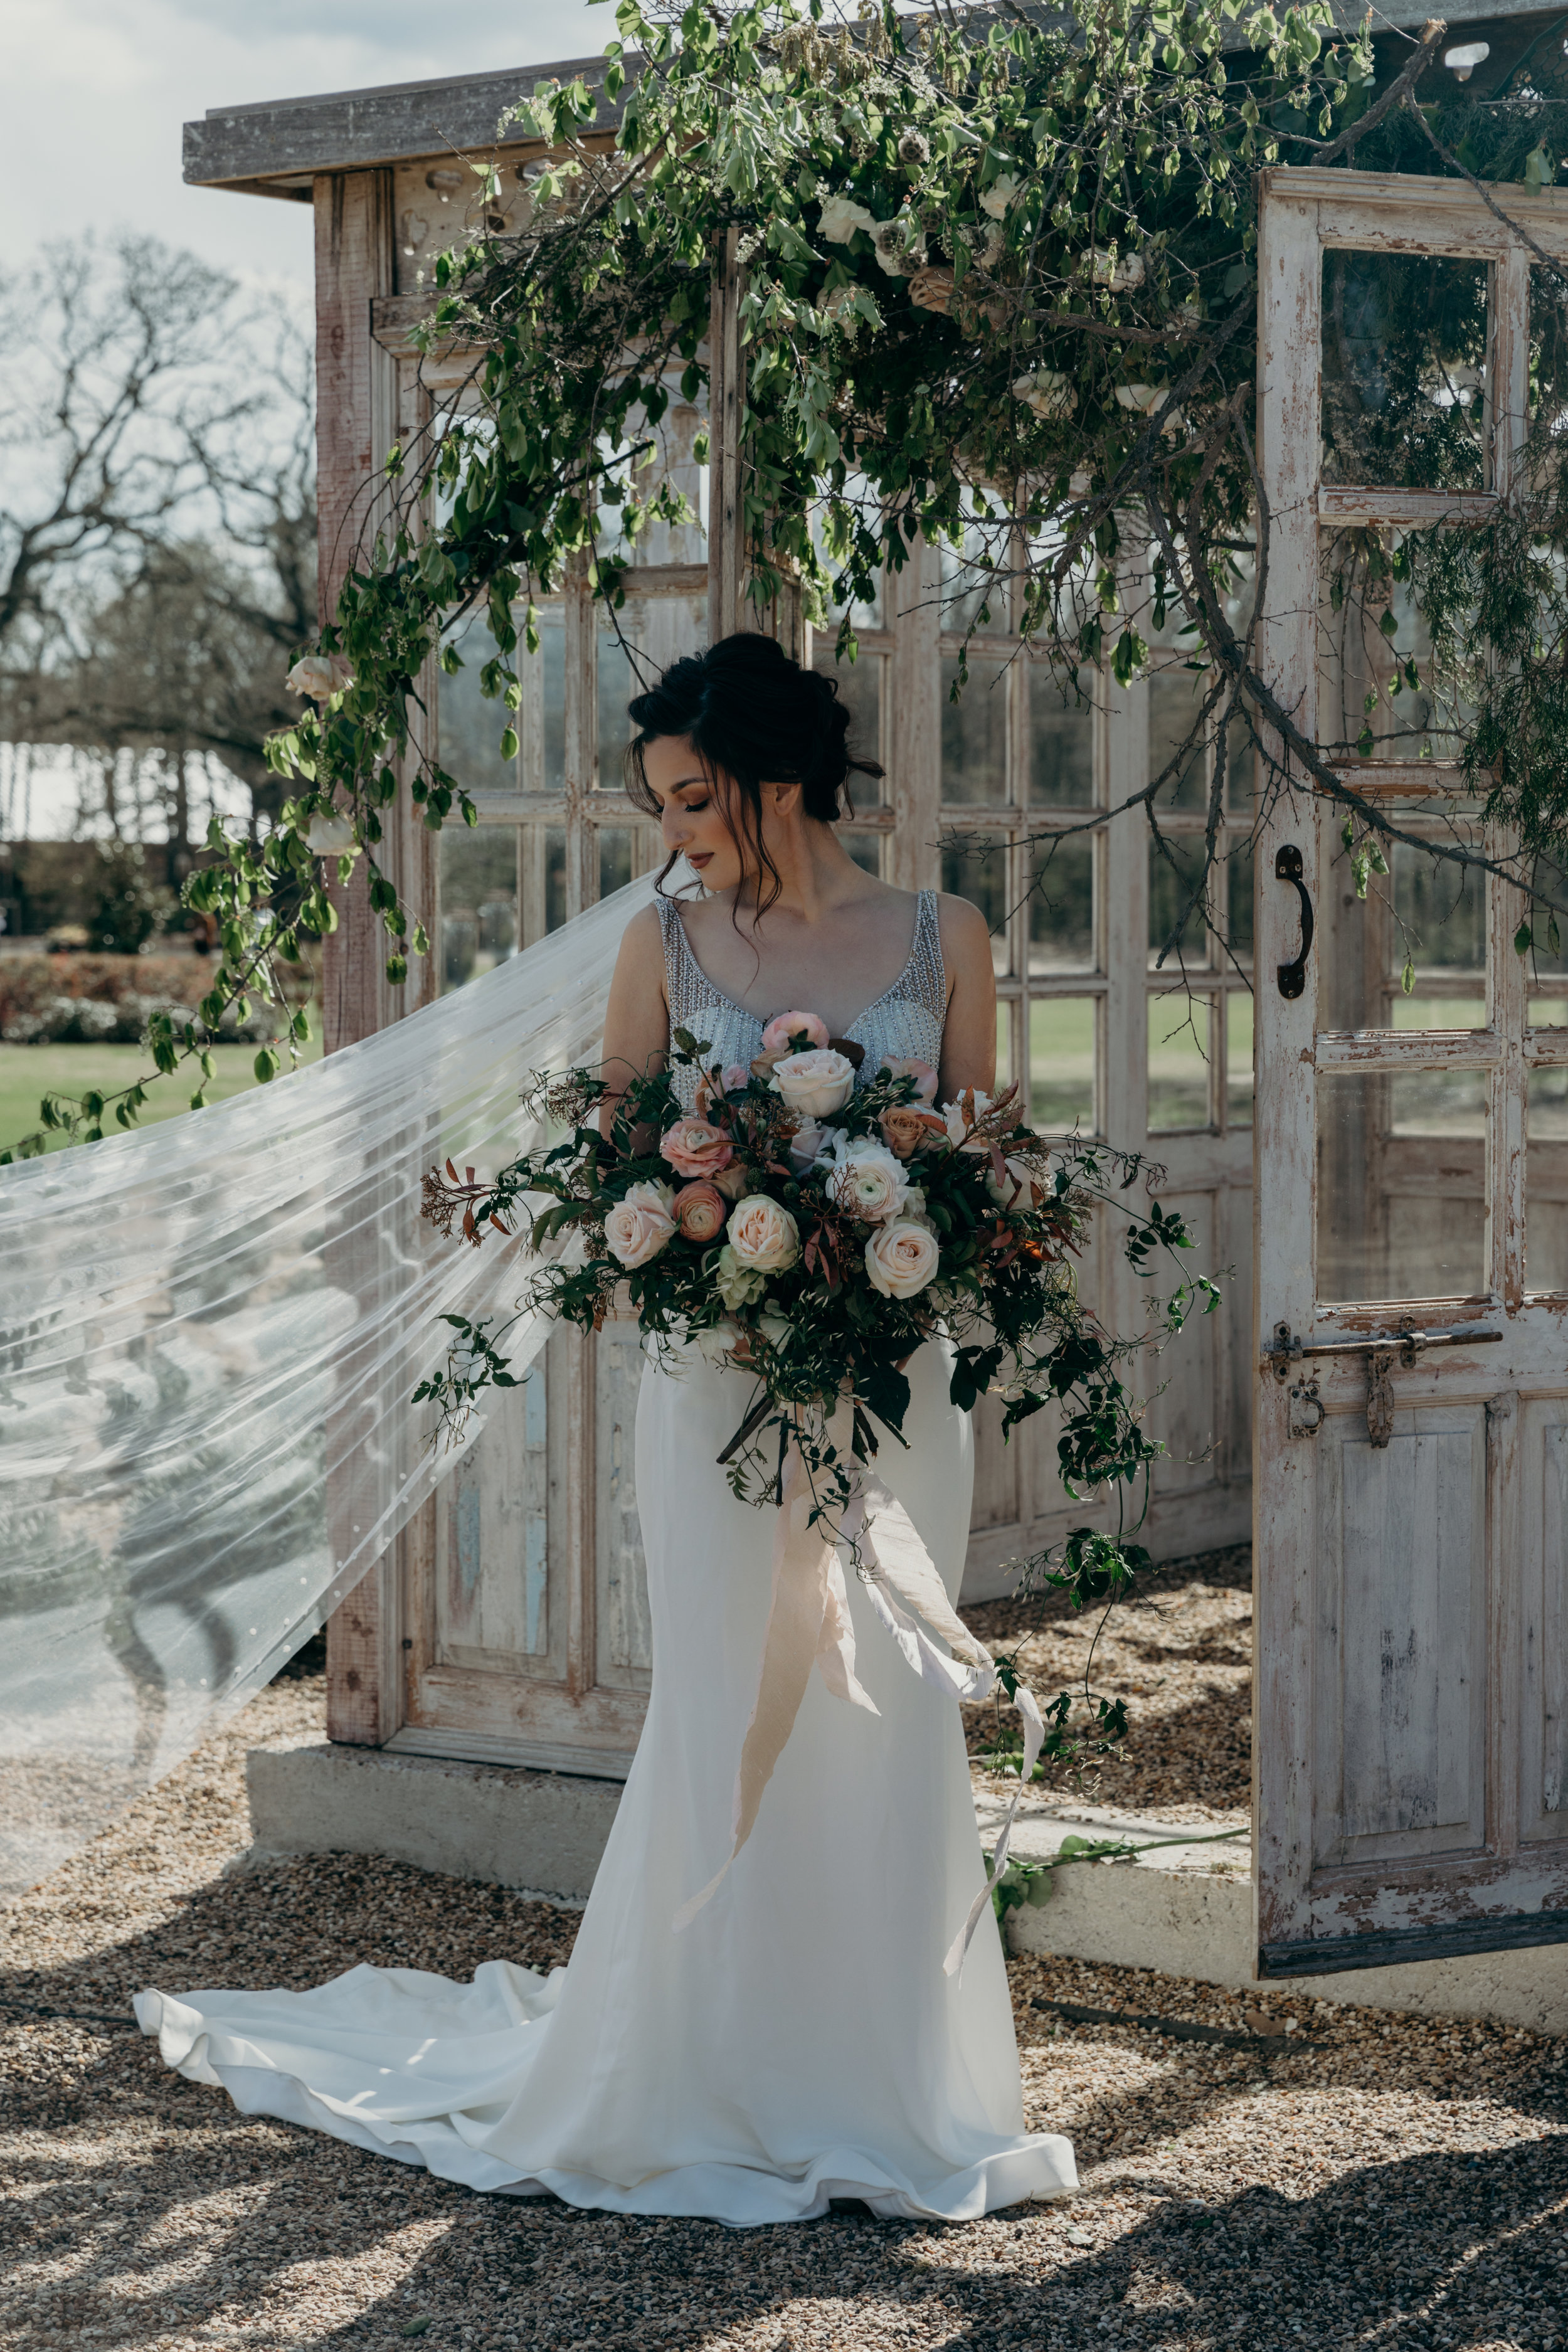 TheWhiteSparrowStyledWeddingShootinTexas-3.jpg